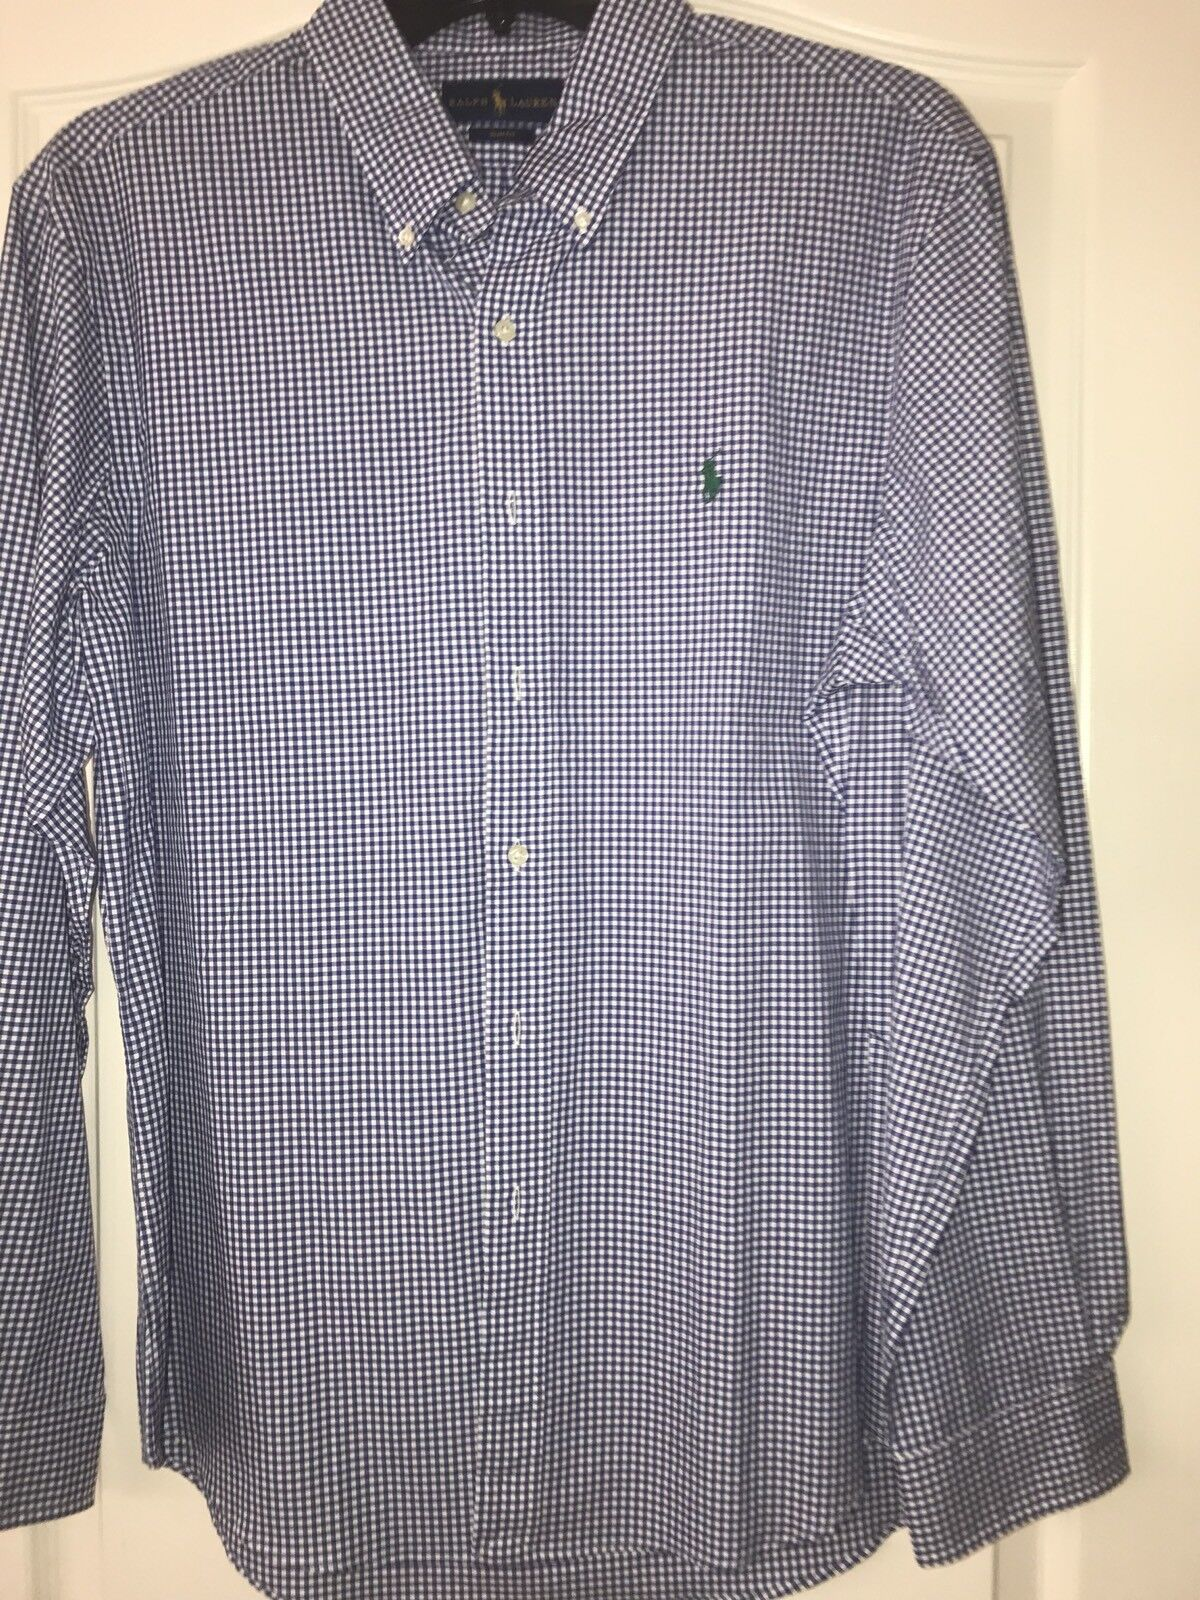 Polo Ralph Lauren Small  Pony     Shirt XLarge XL